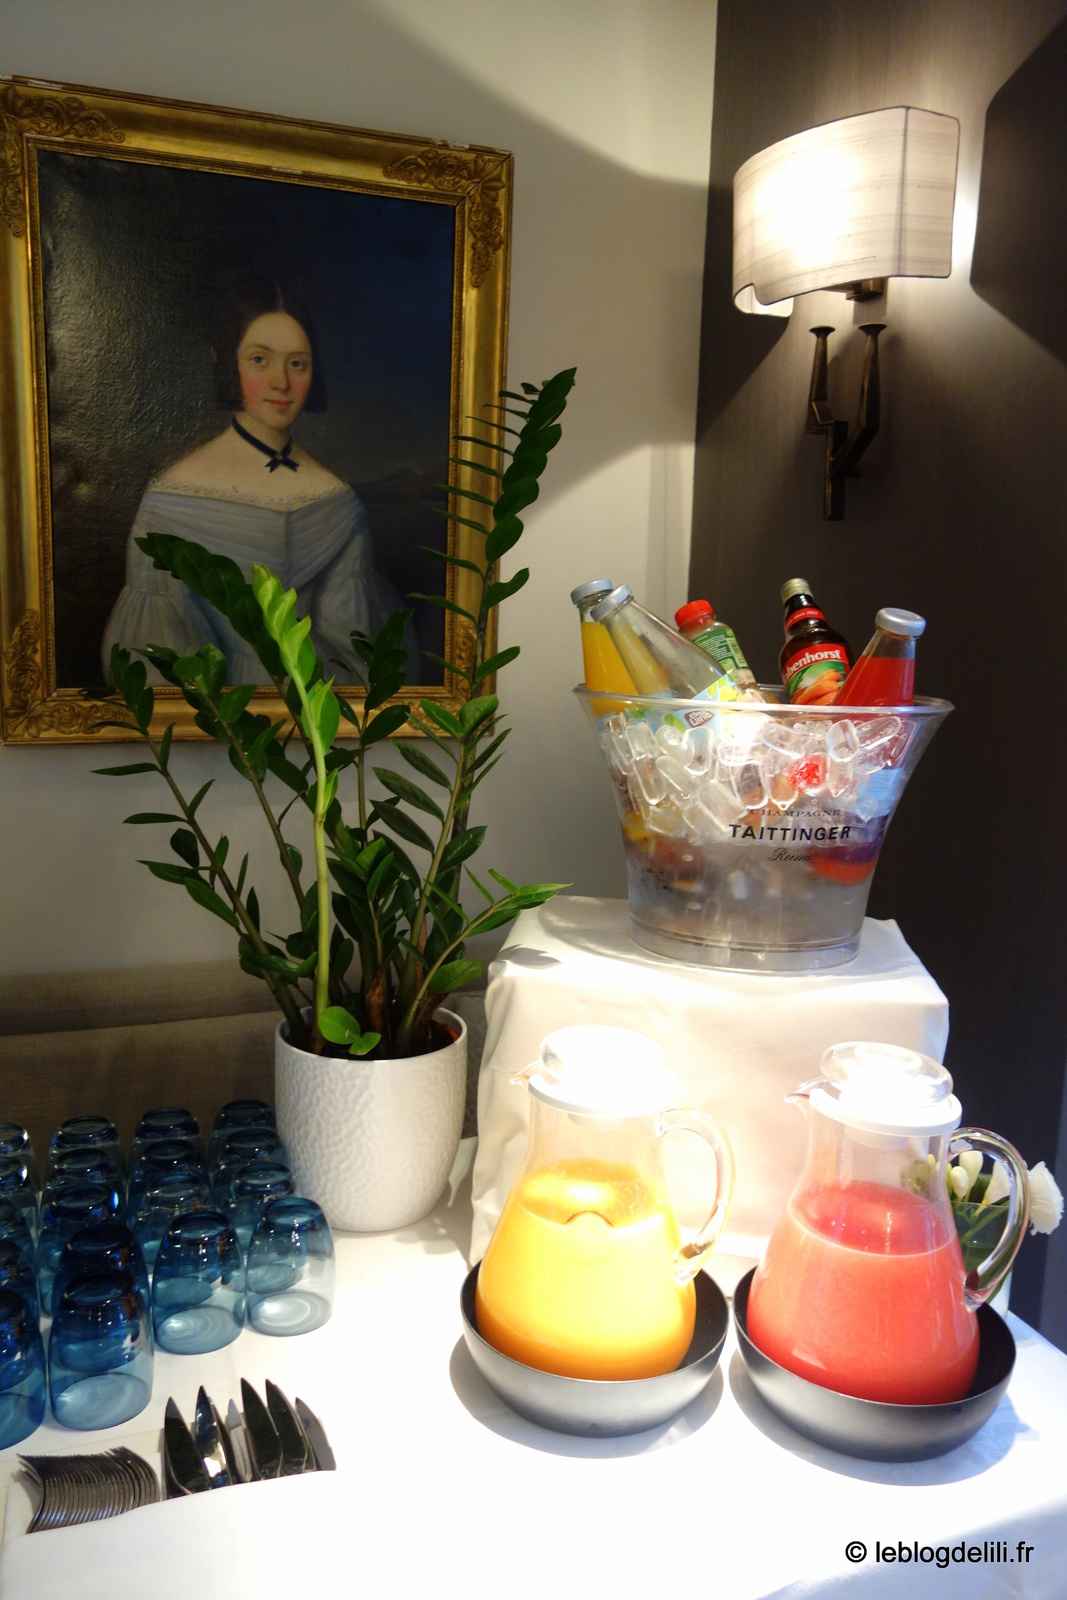 ob_32a84e_brunch-bio-paris-hotel-de-sers-5